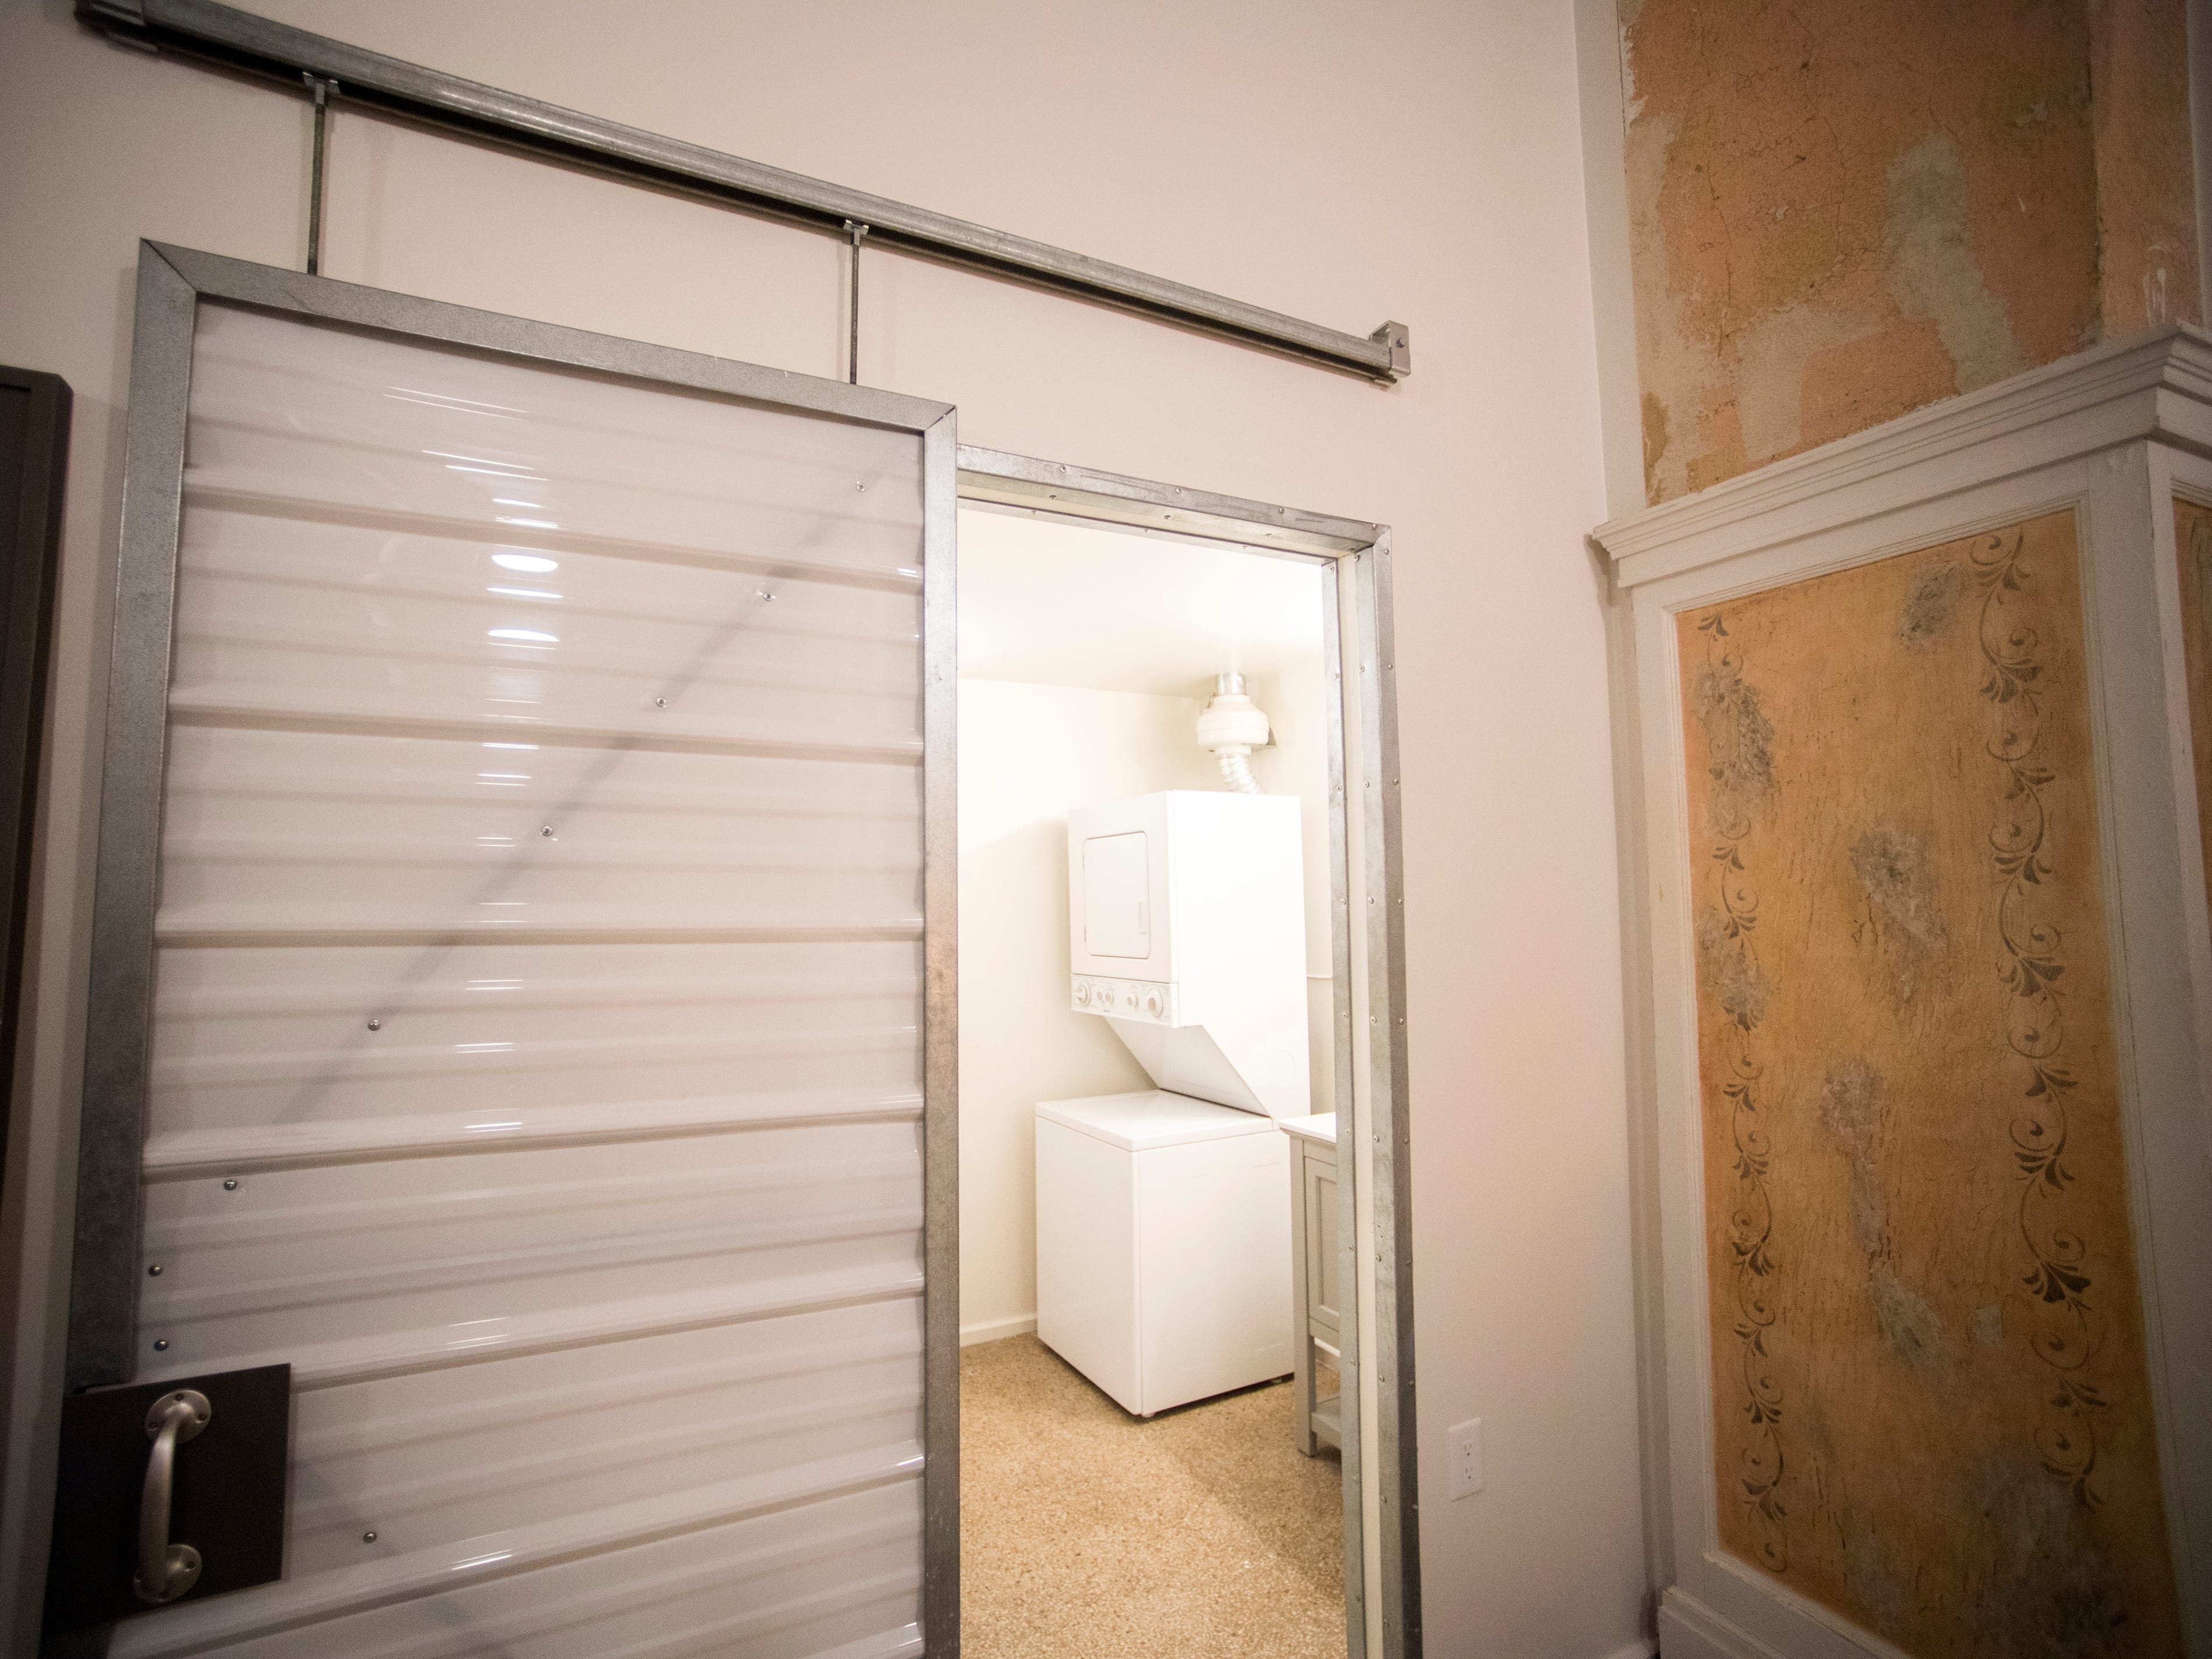 A sliding door to the bathroom in a renovated condo at Sterchi Lofts on Gay St. in downtown Knoxville.